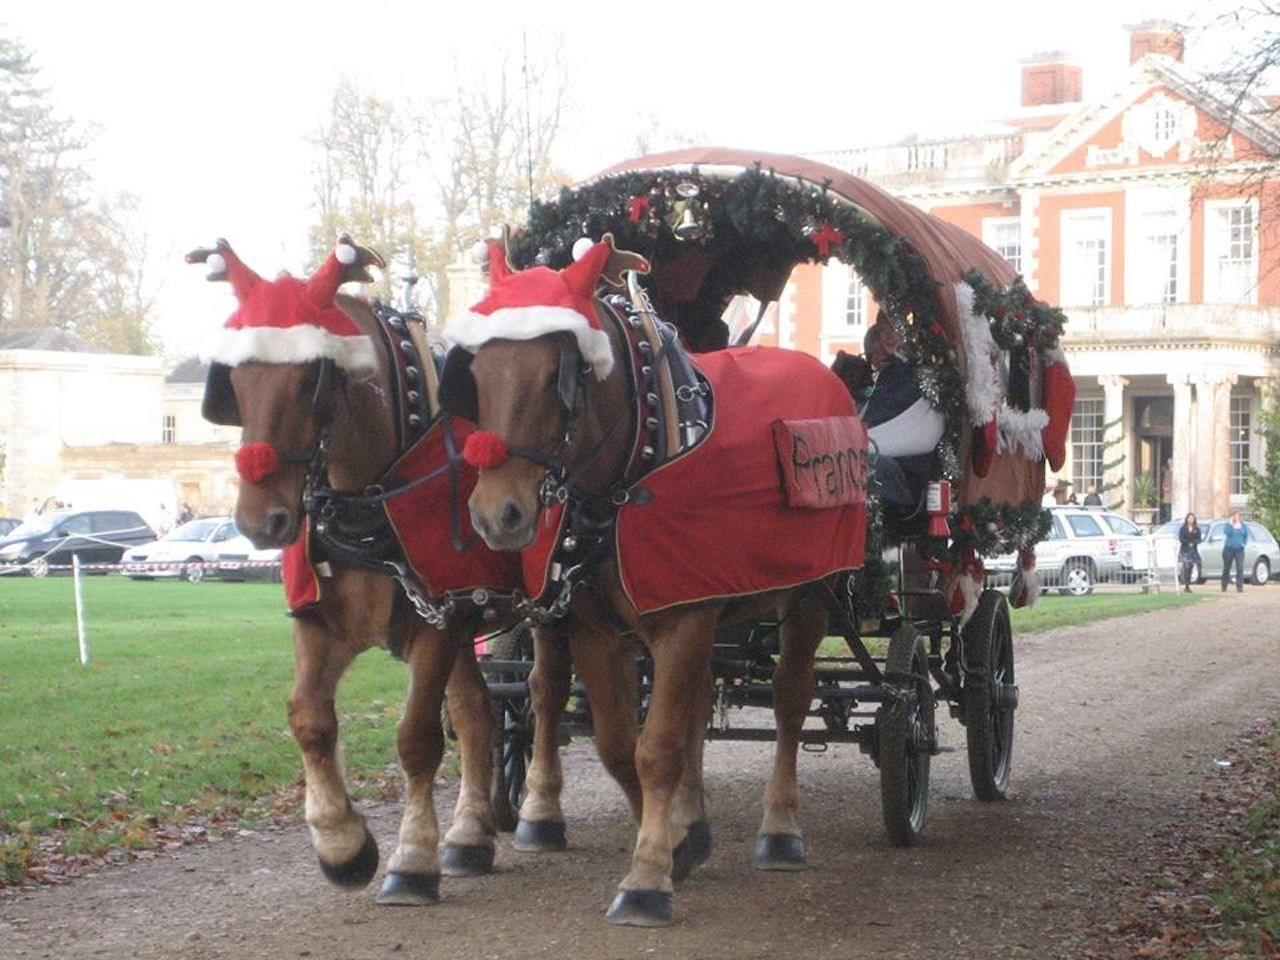 Horse-drawn Christmas carriage for the Stockbridge Christmas festivities